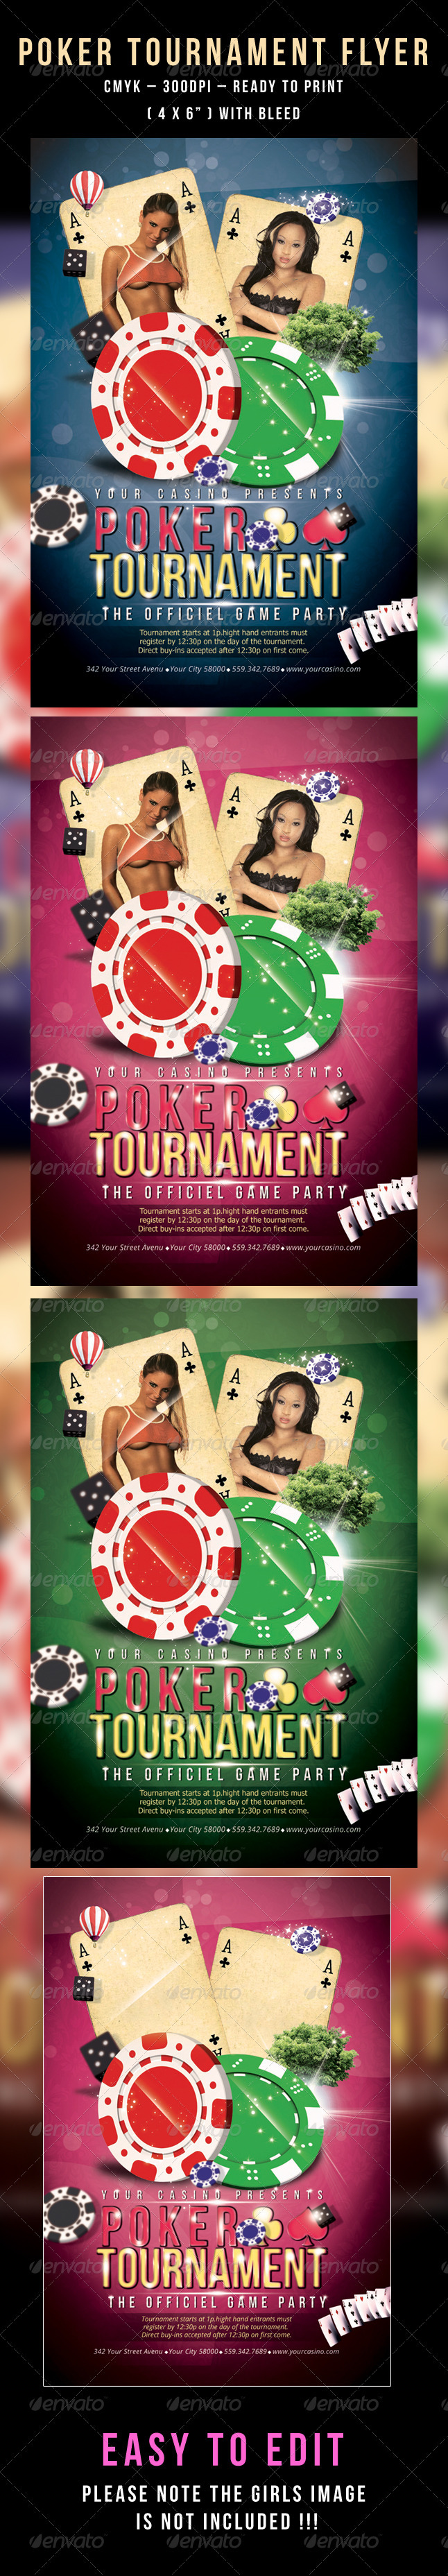 Poker Tournament Flyer - Flyers Print Templates